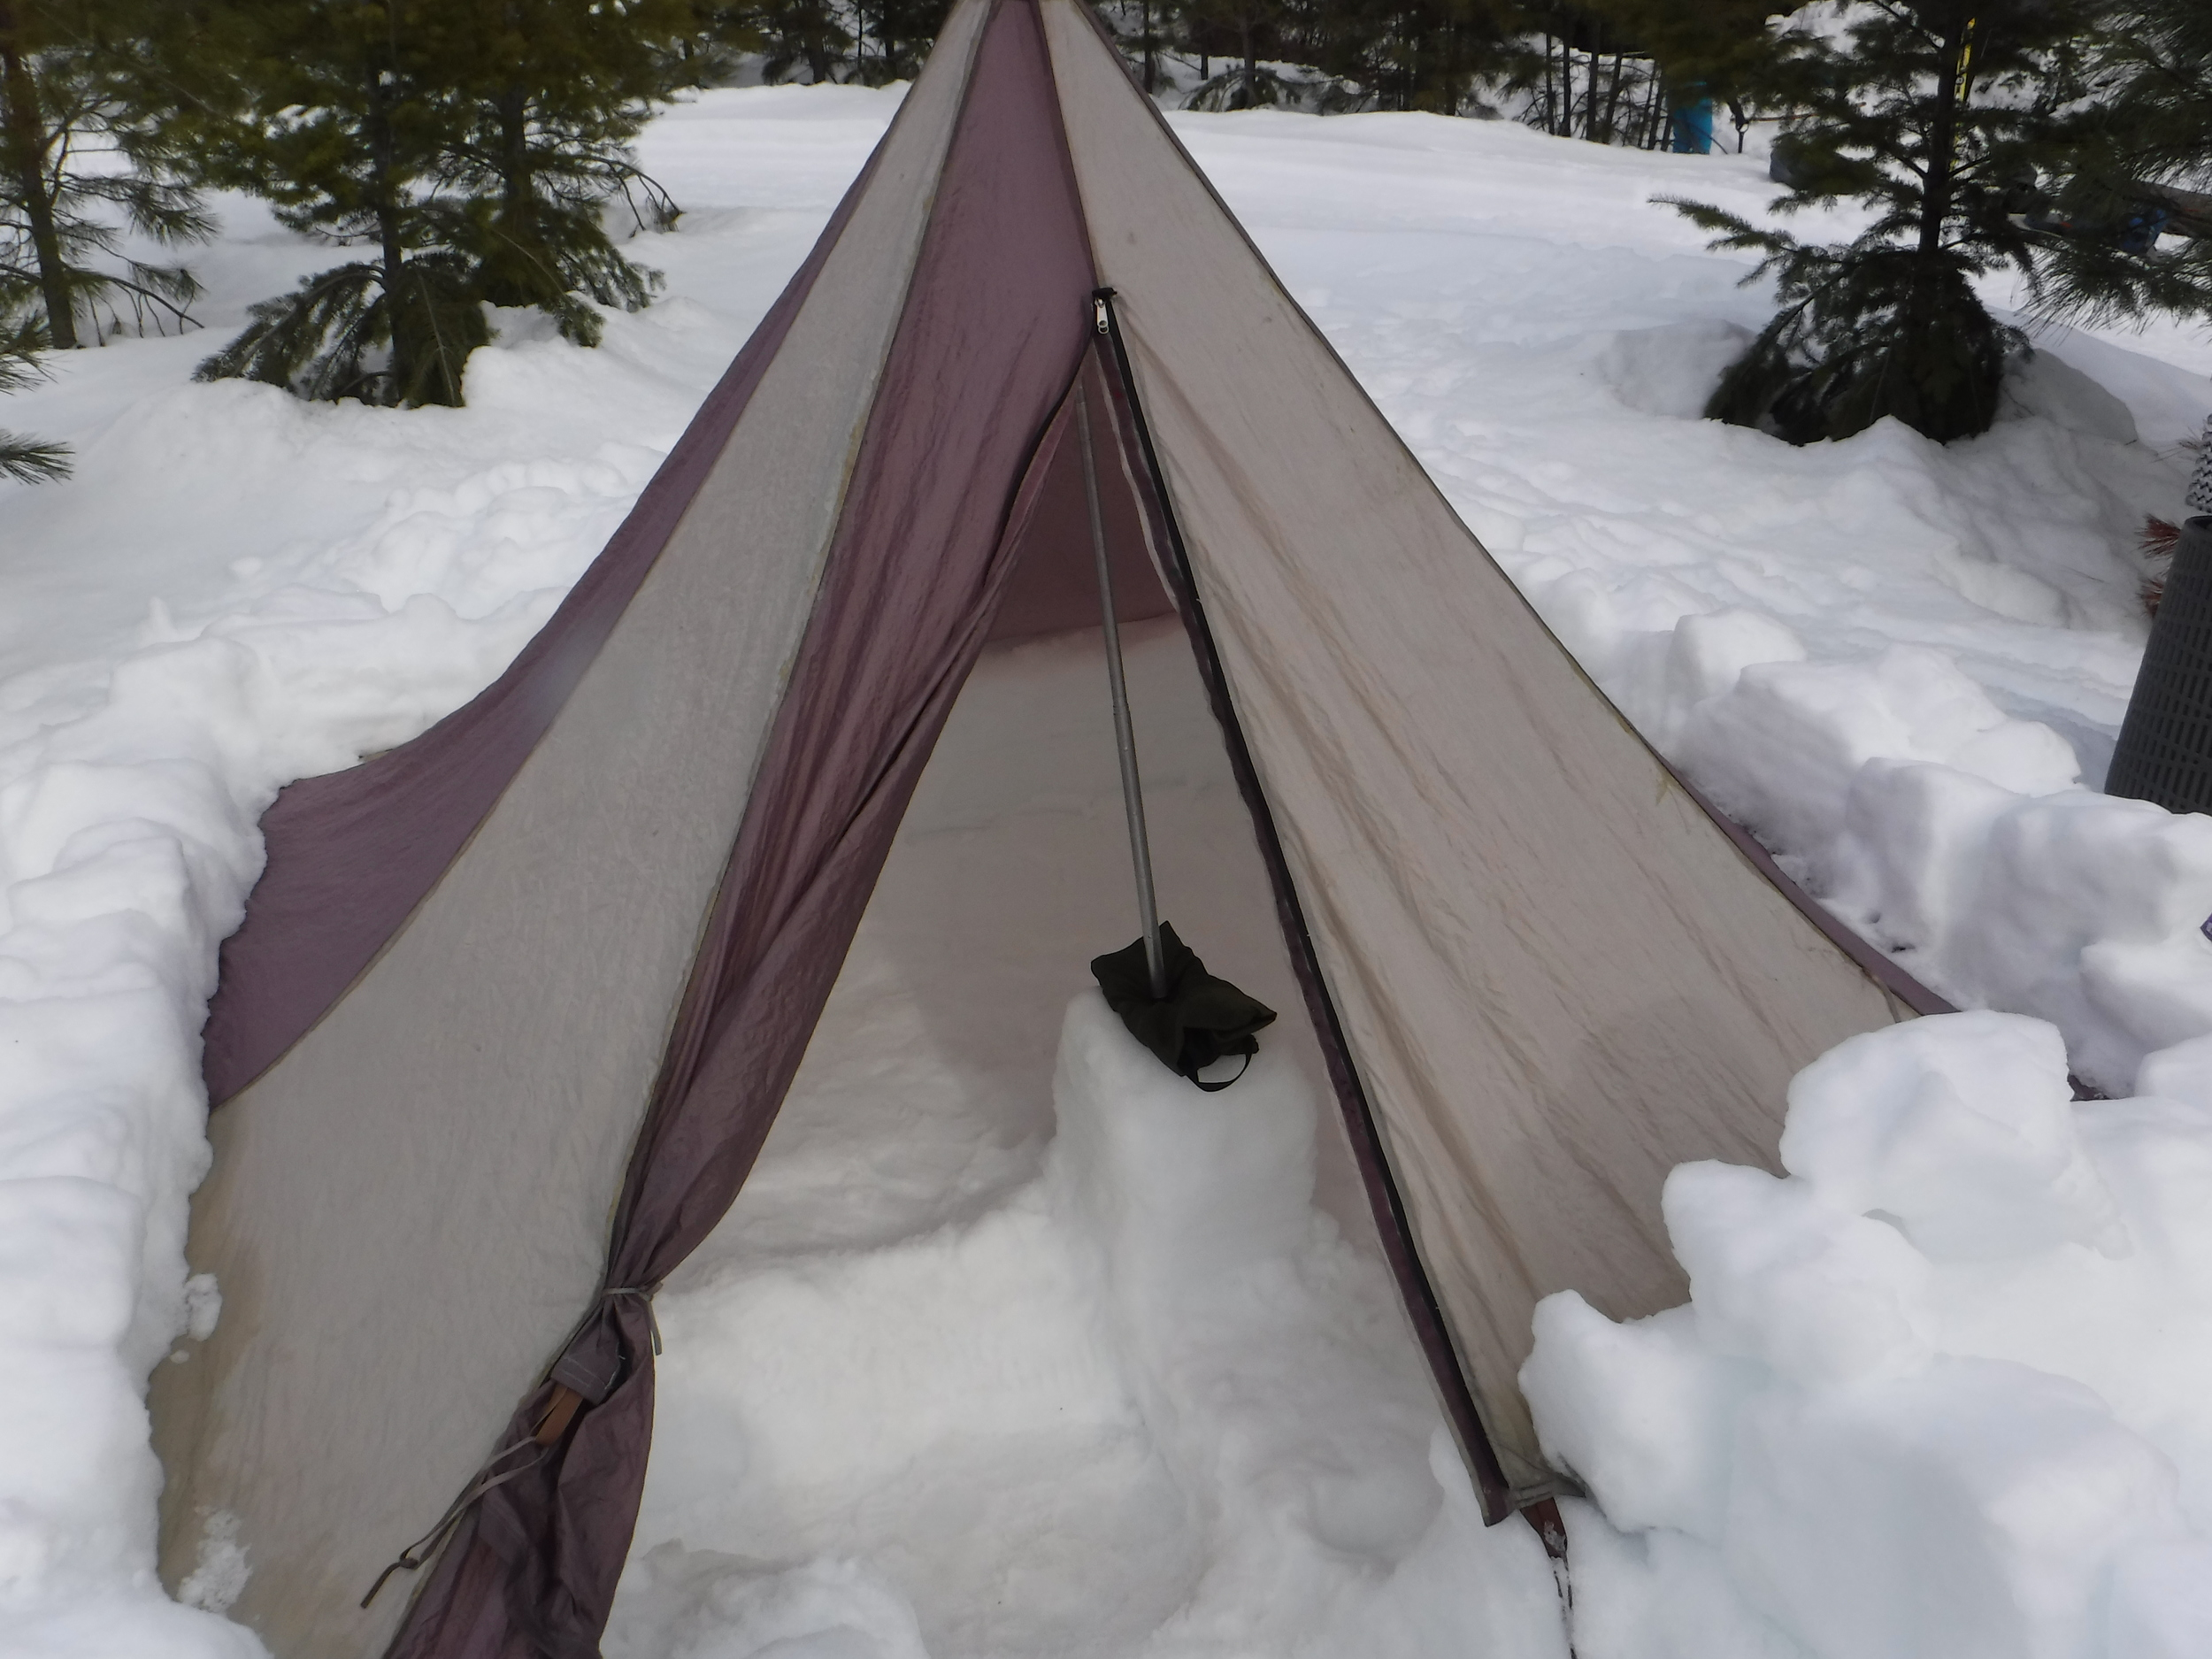 Snow tent. Room for three.